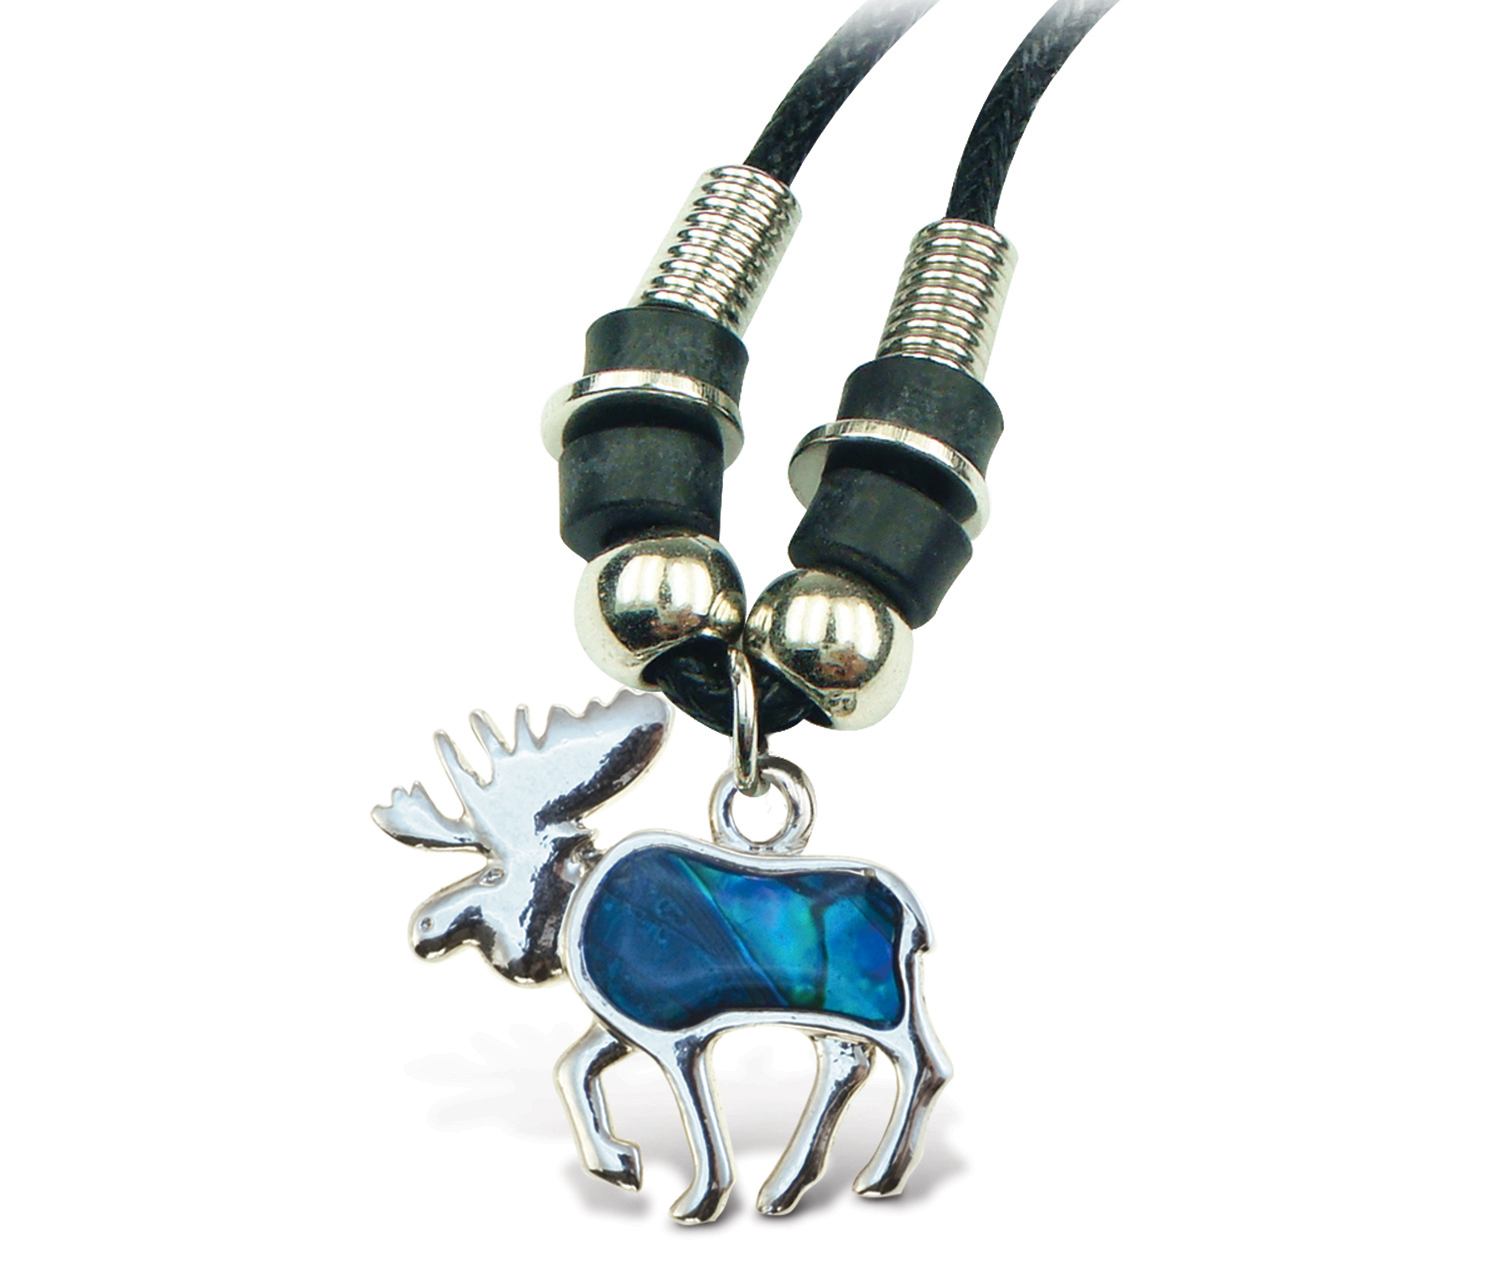 Necklace Wild Style Chain 18 Inch Moose - Aqua JEWELRY